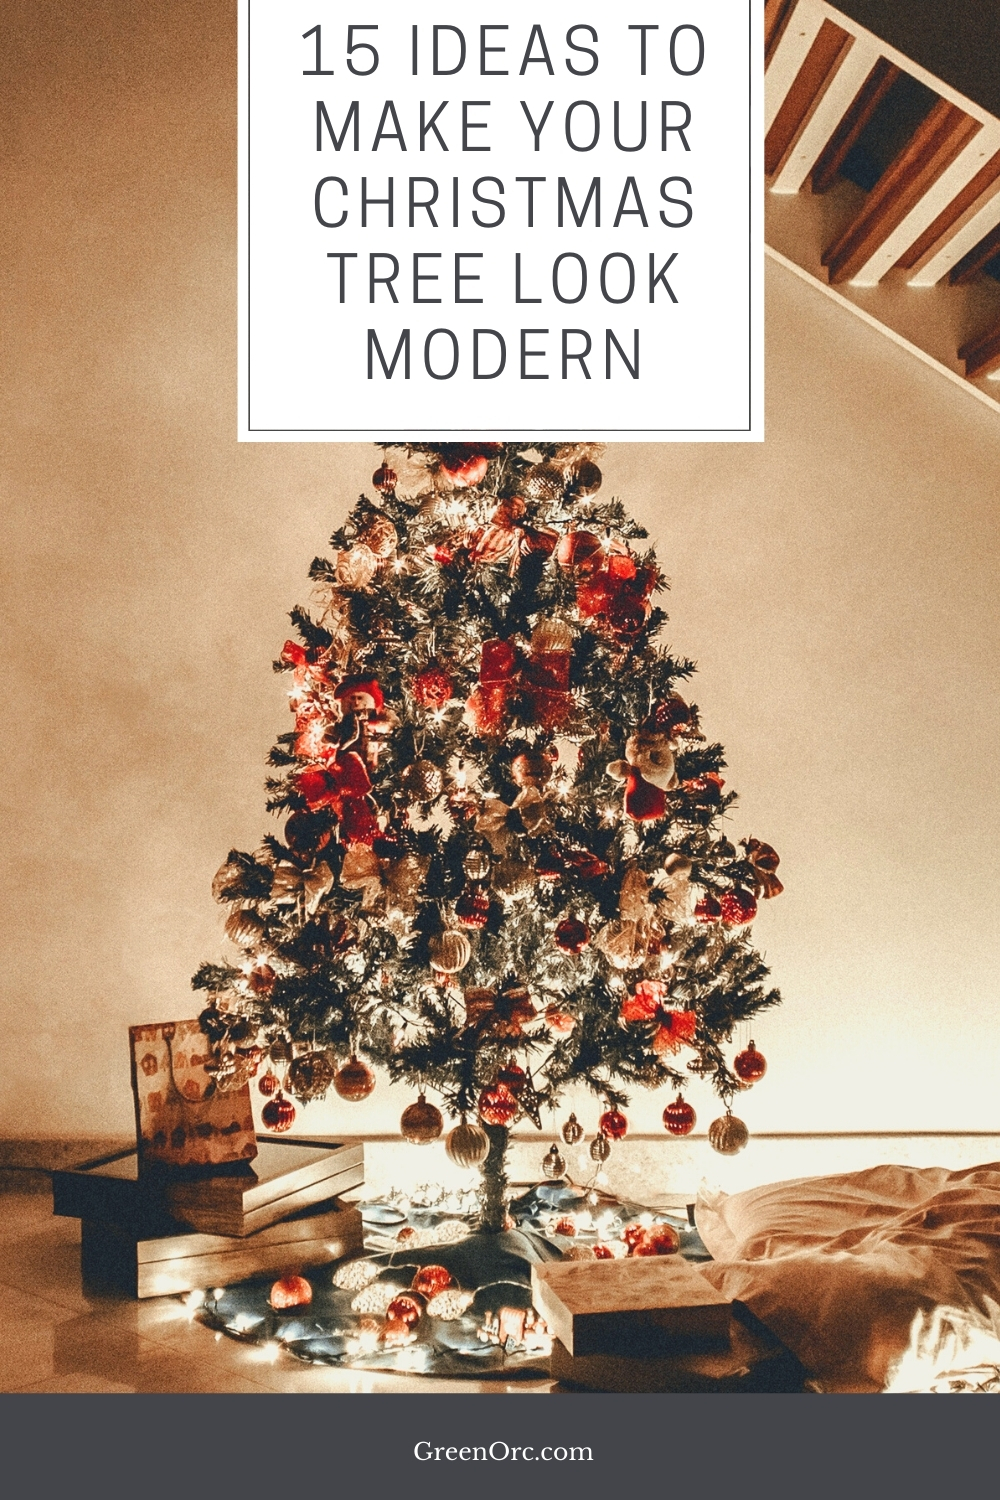 A Christmas tree featuring a wide variety of decorative elements.